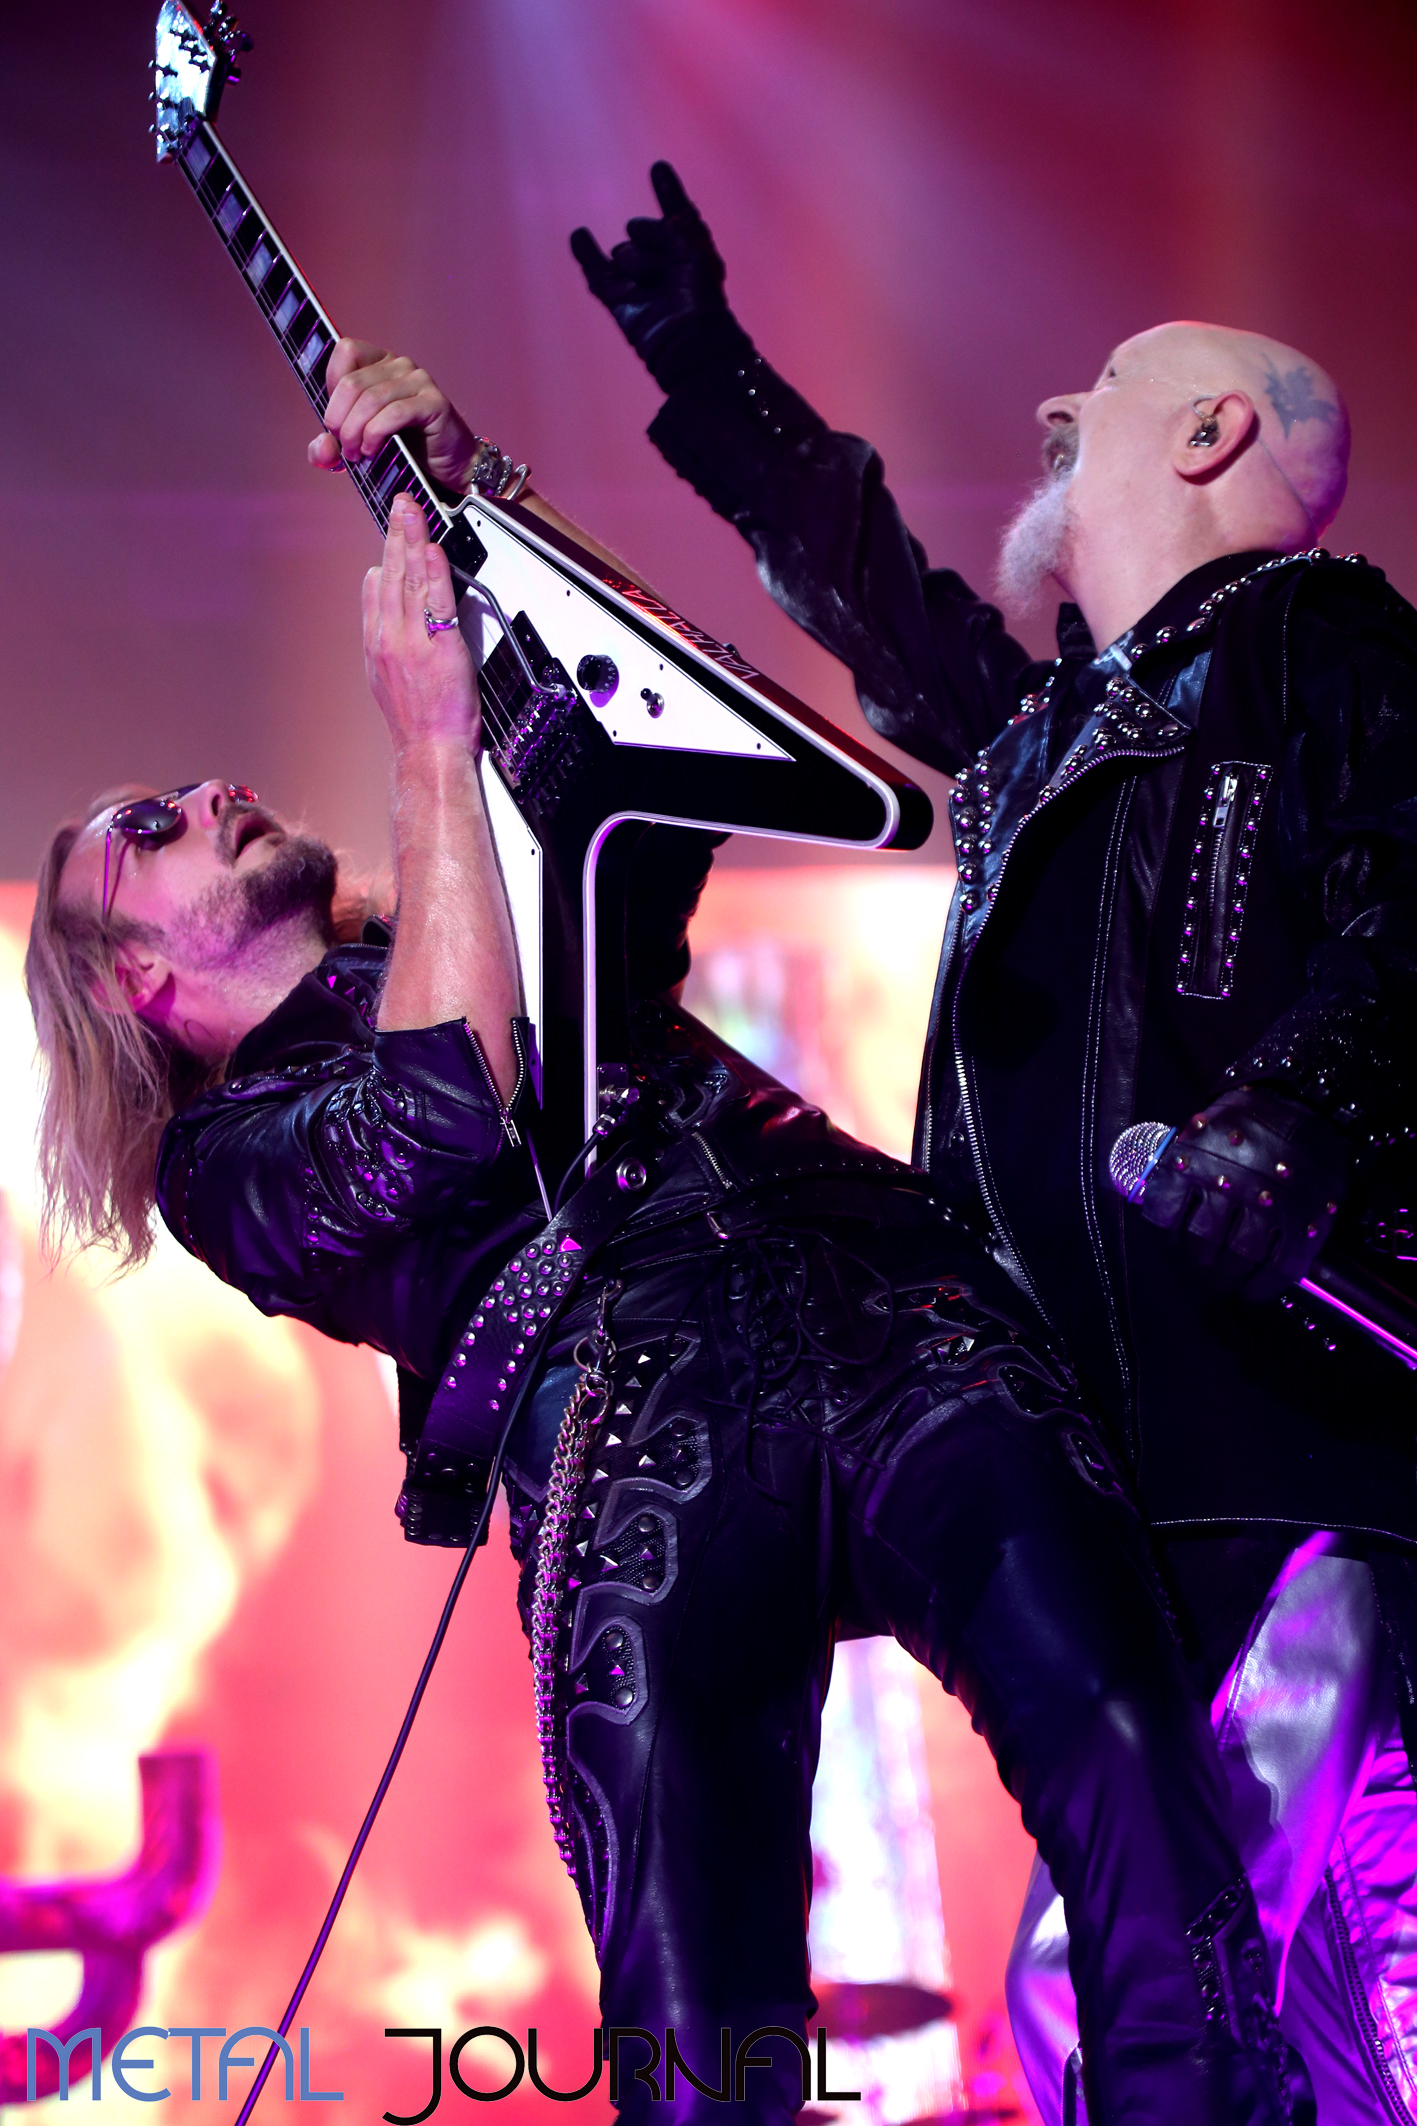 judas priest - metal journal barakaldo 2018 pic 8